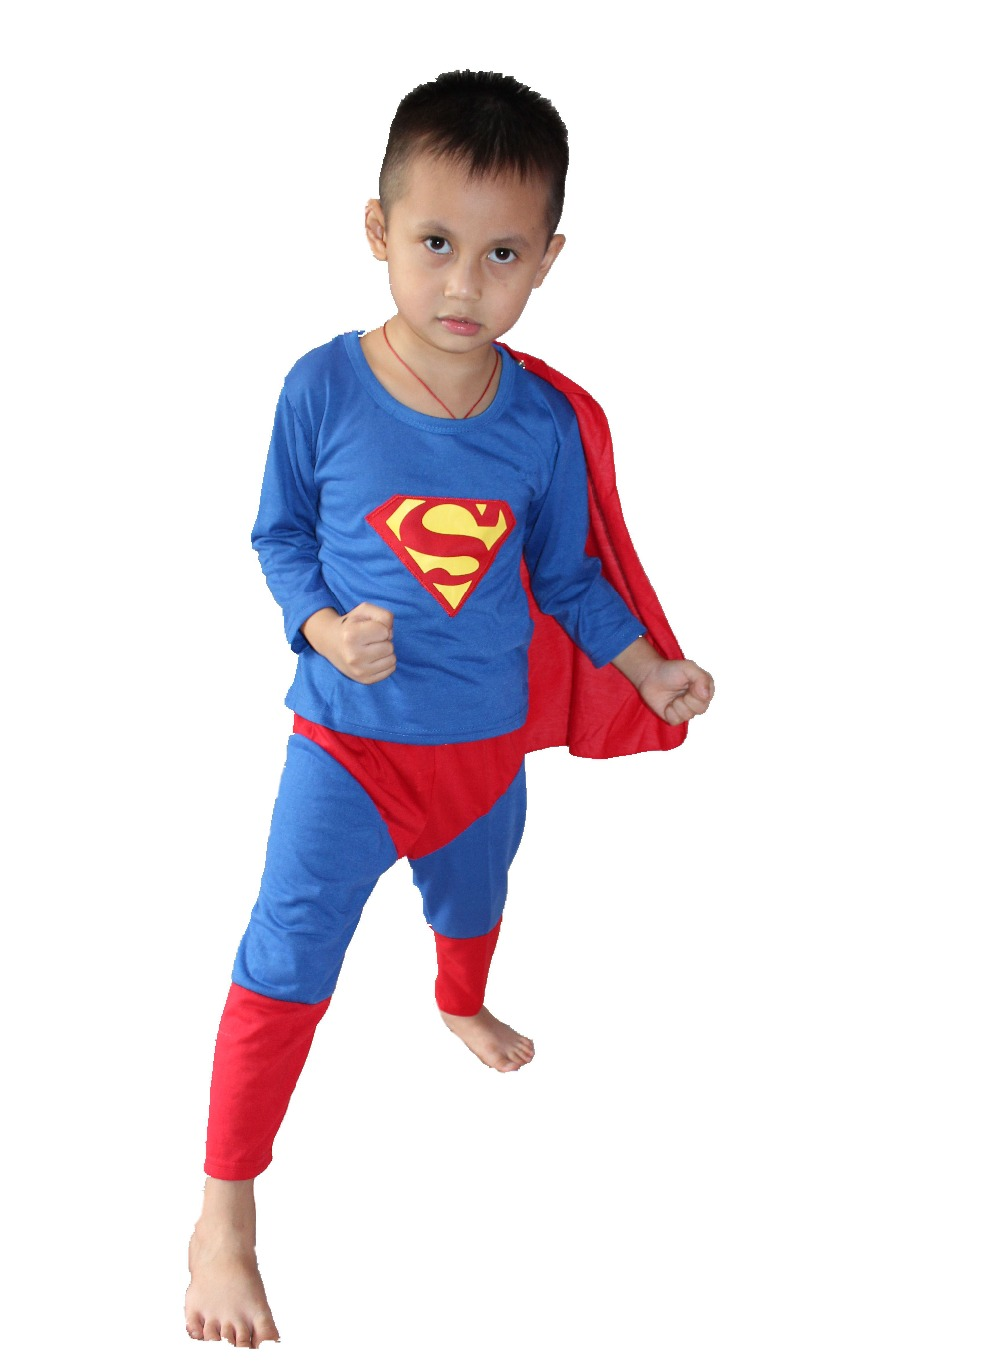 detal - Halloweenowe kostiumy Hallowmas 3 - 7 lat kid superman Zagraj w ubrania / Boy superman costume Cosplay T- shirt